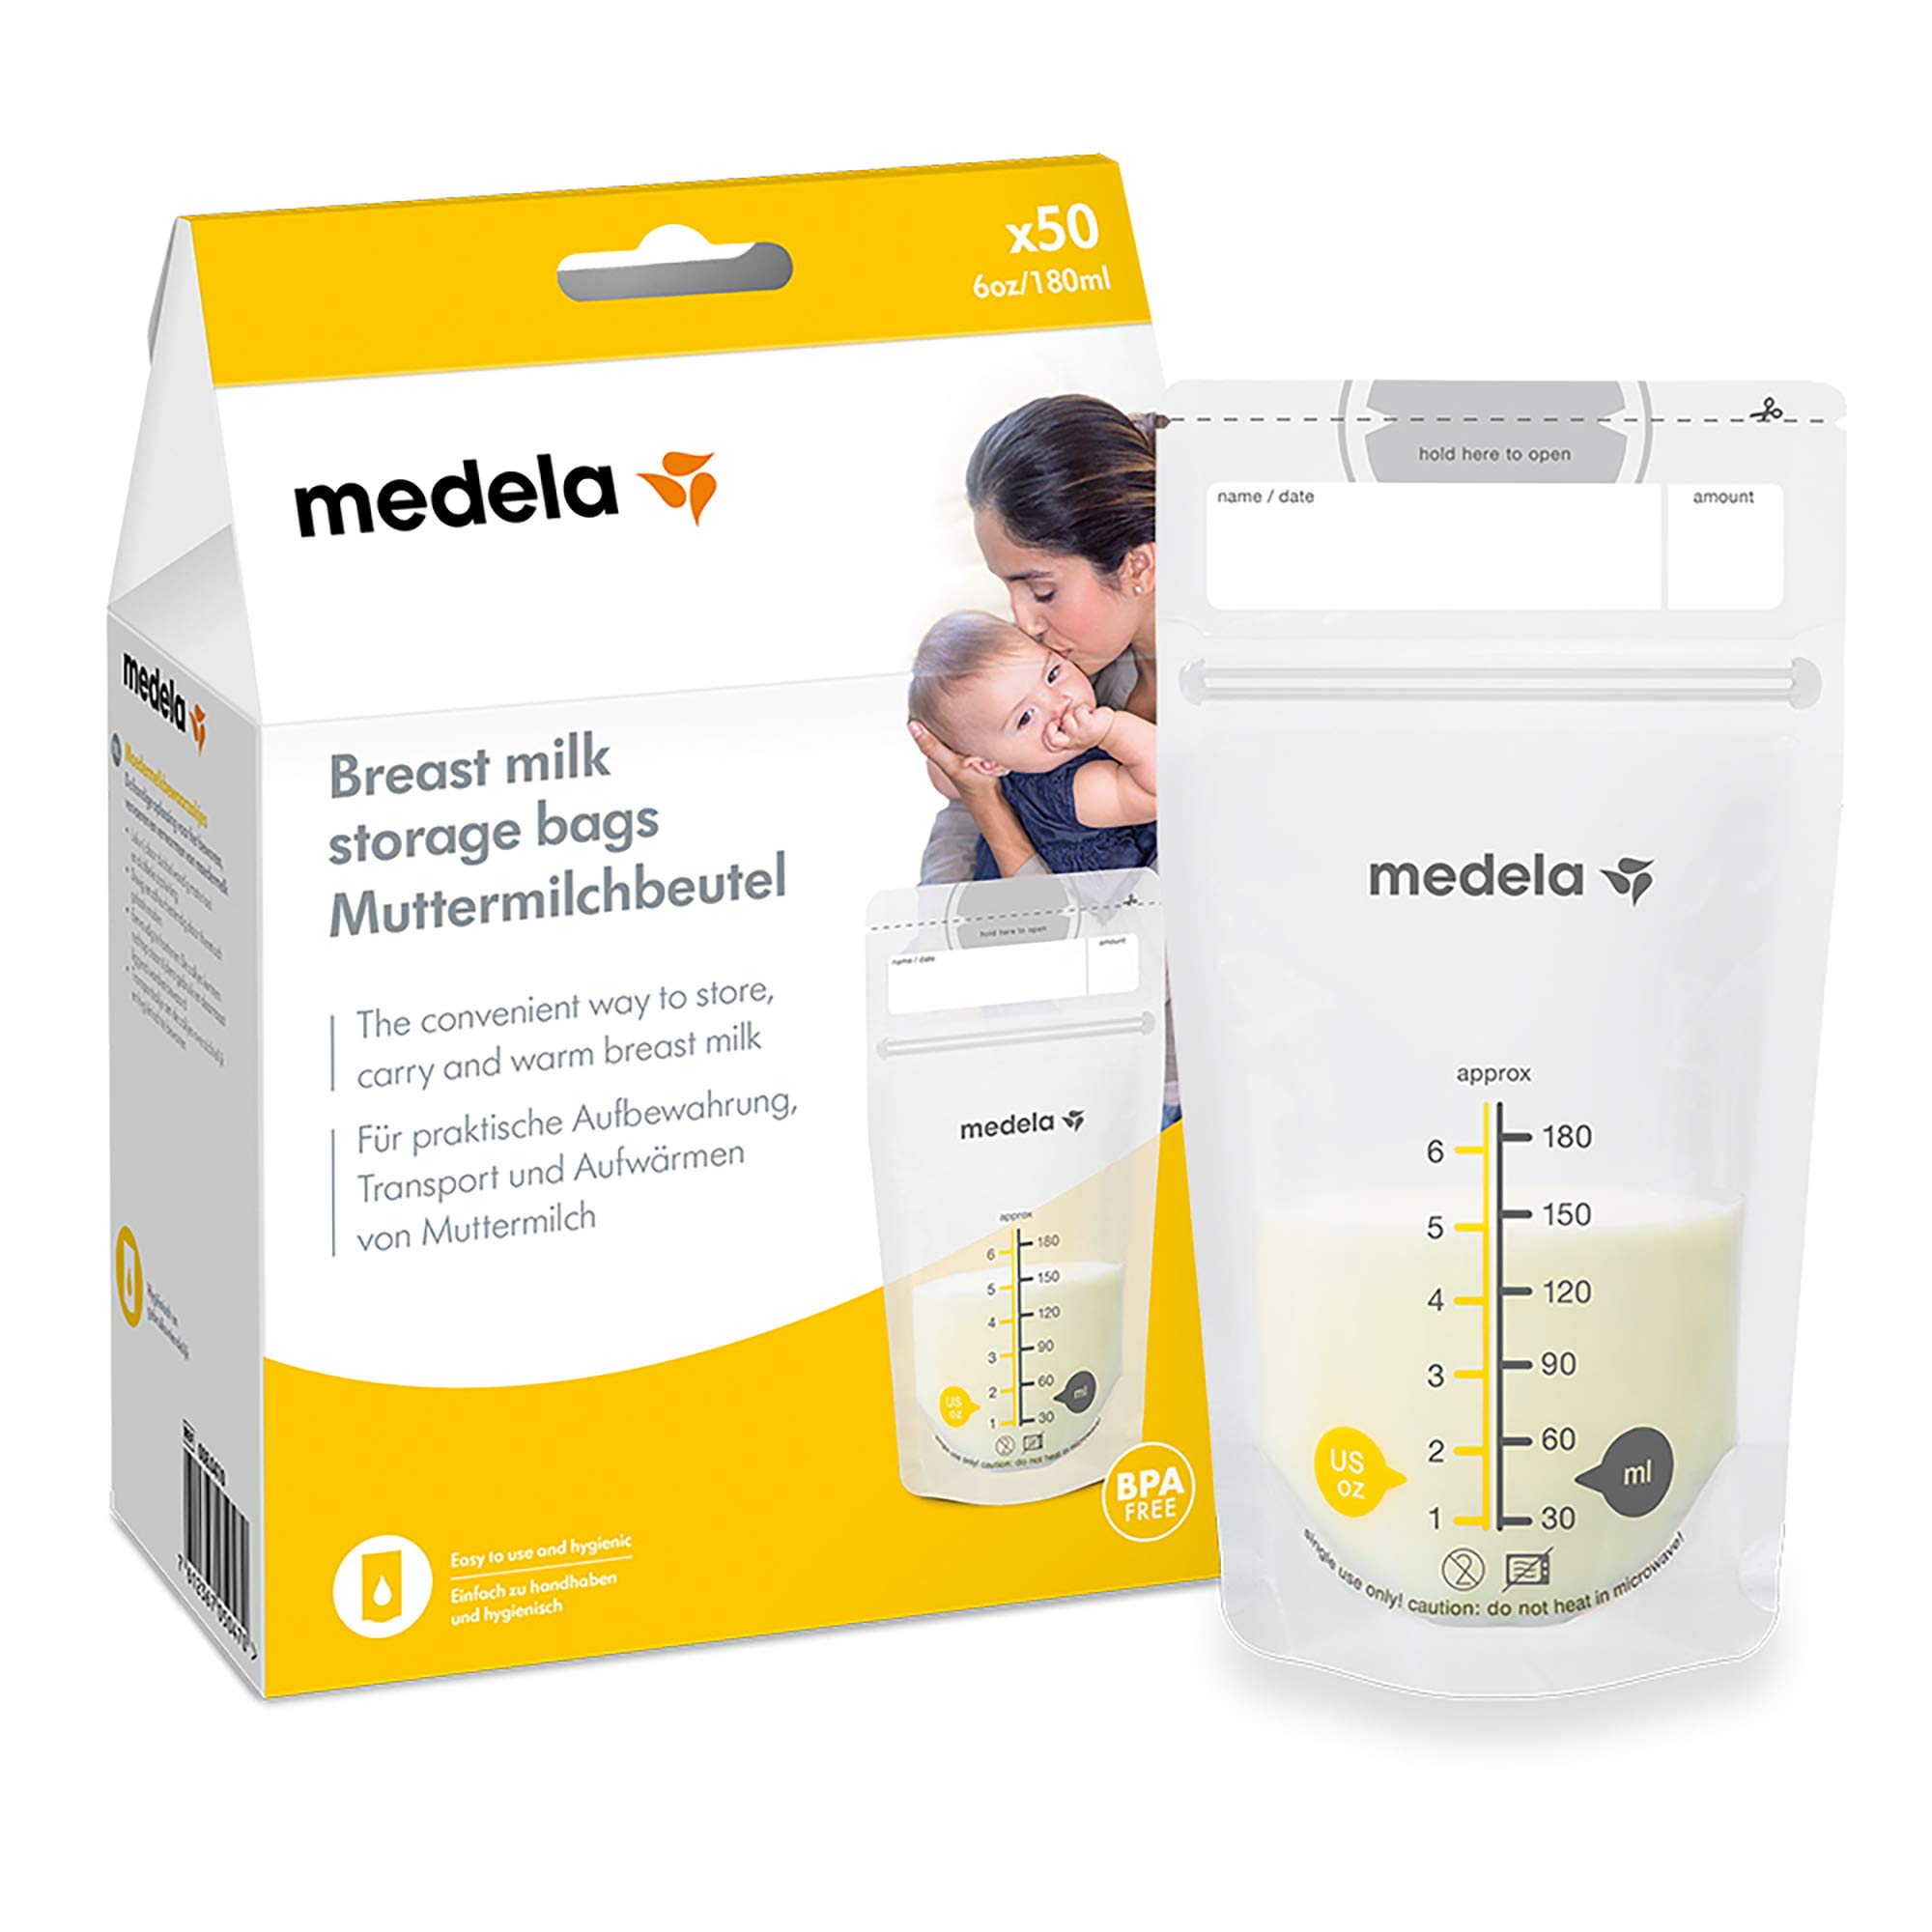 Medela Pump and Save Breast Milk Storage Bags, Breastmilk Collection Bags, Pack of 50